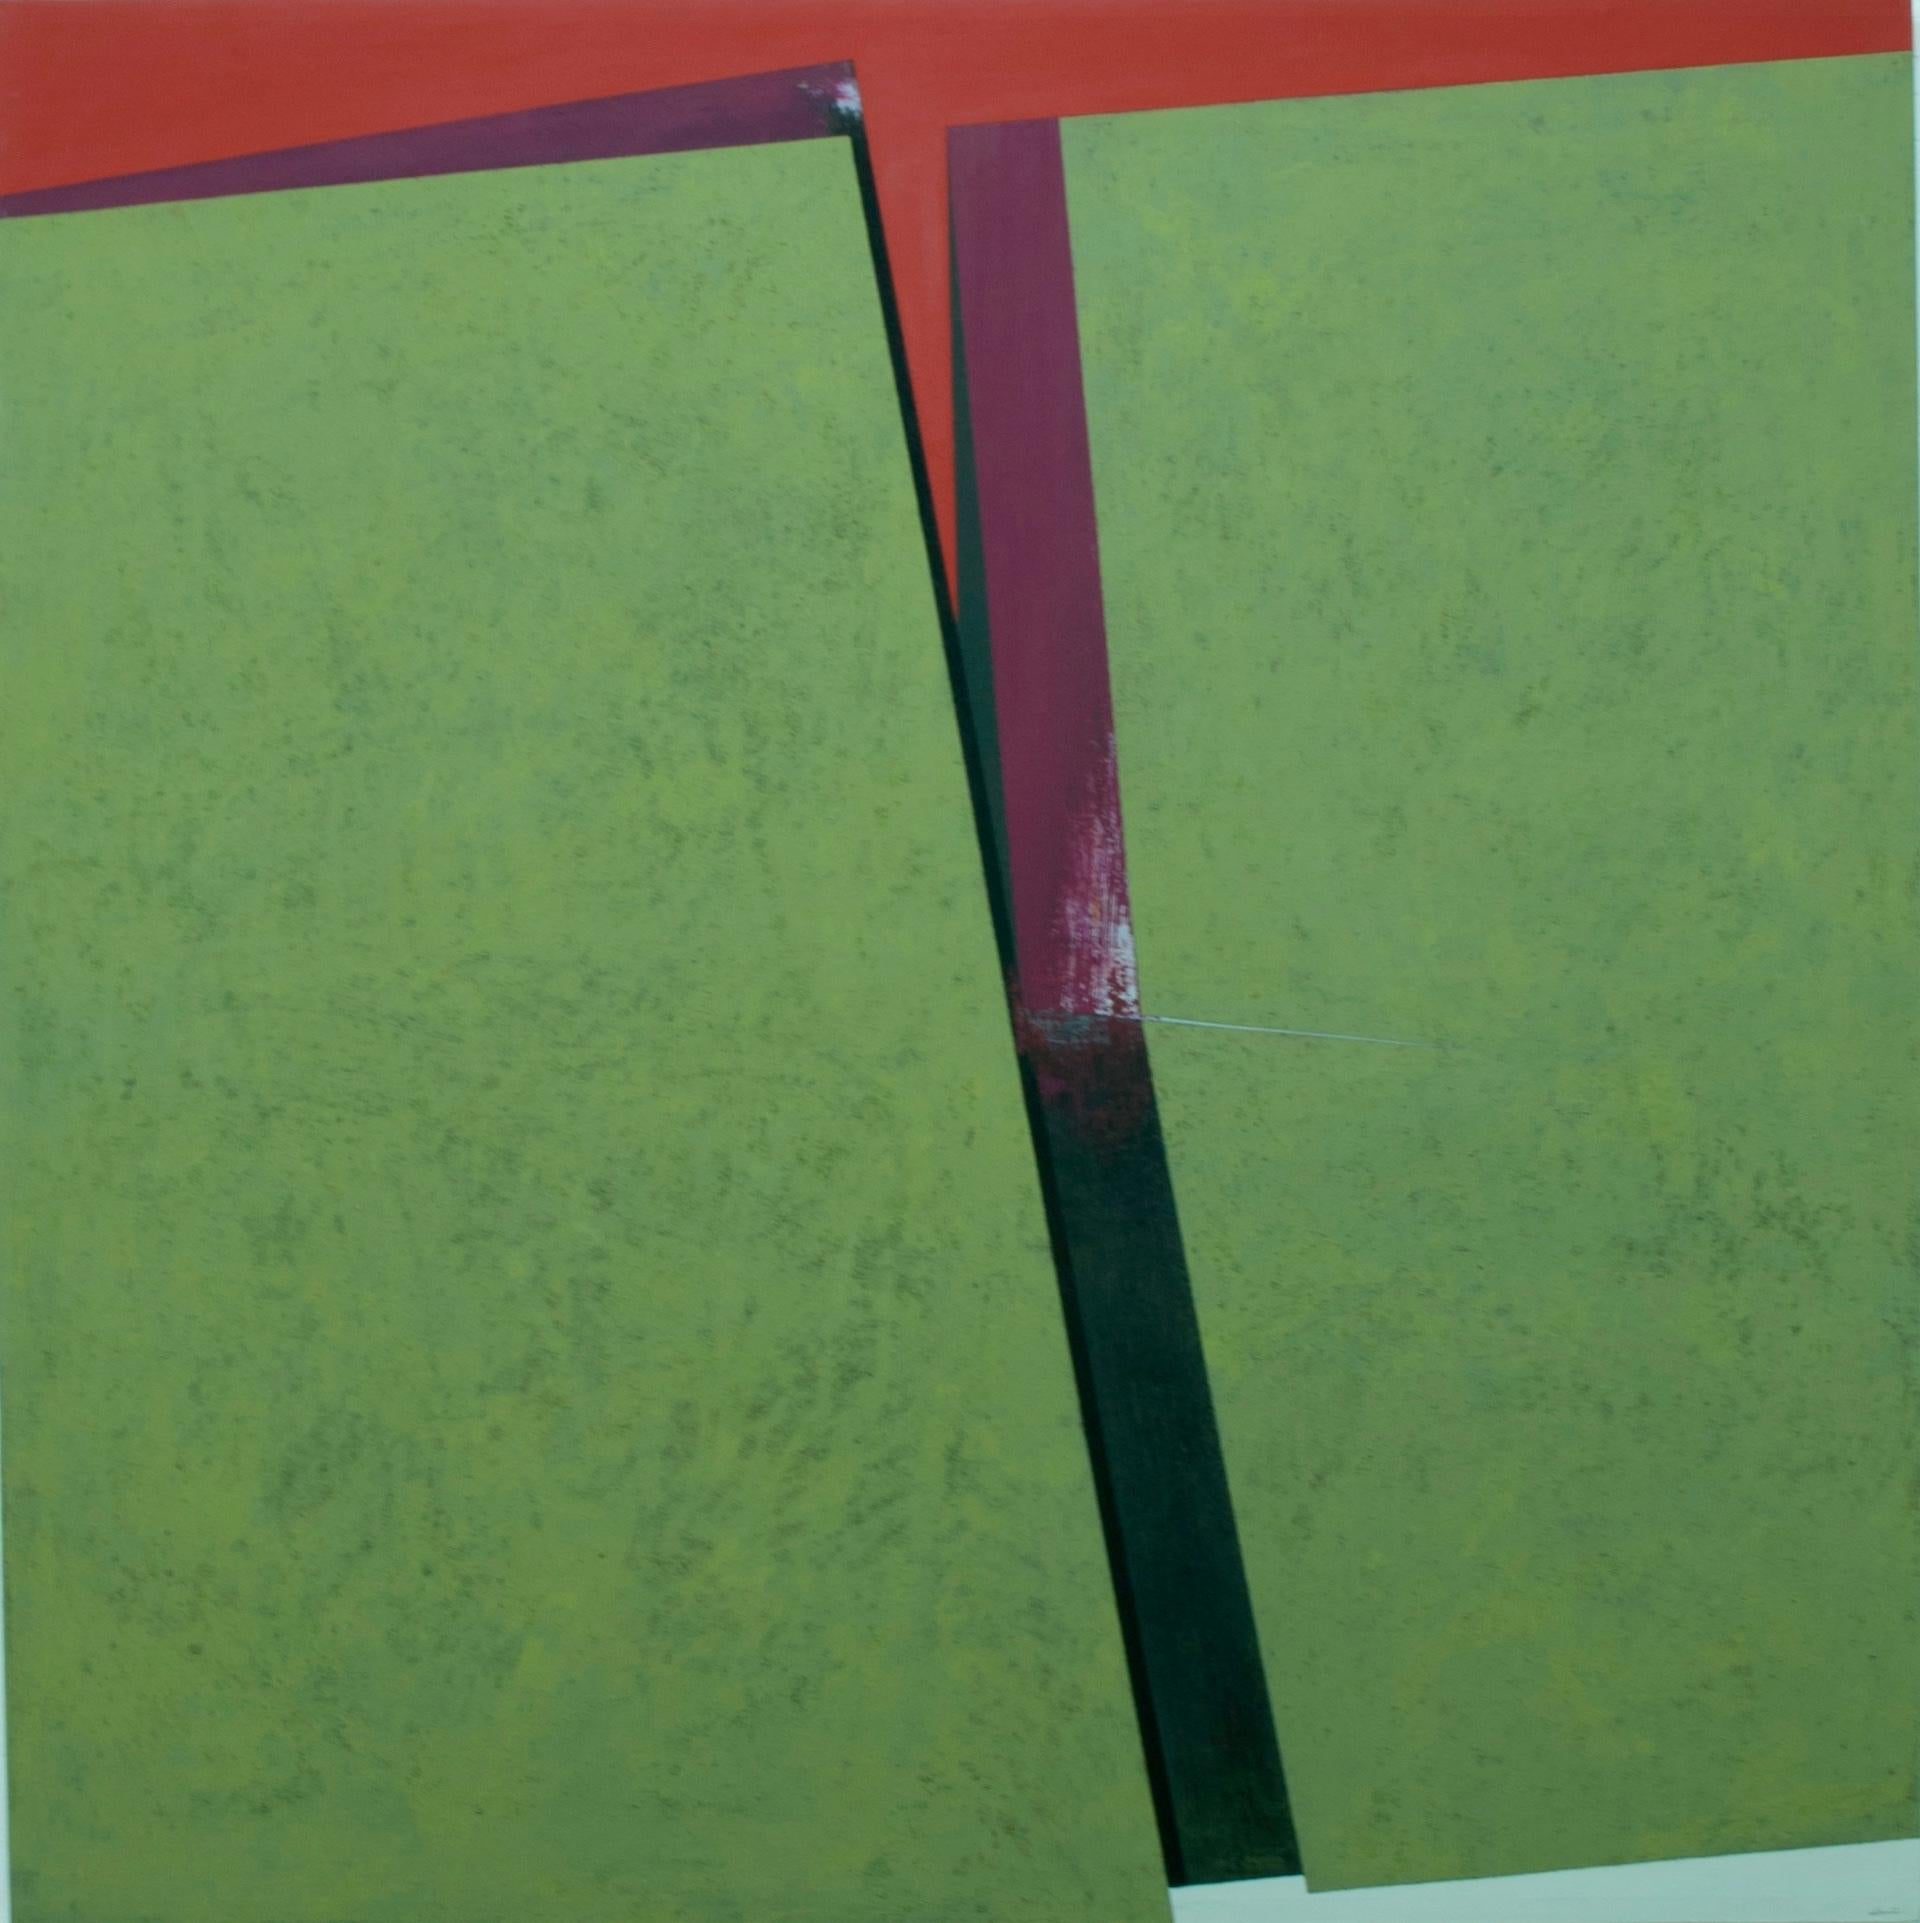 Division on the Green: Abstract Hard Edge Painting on Canvas by Silvia Lerin